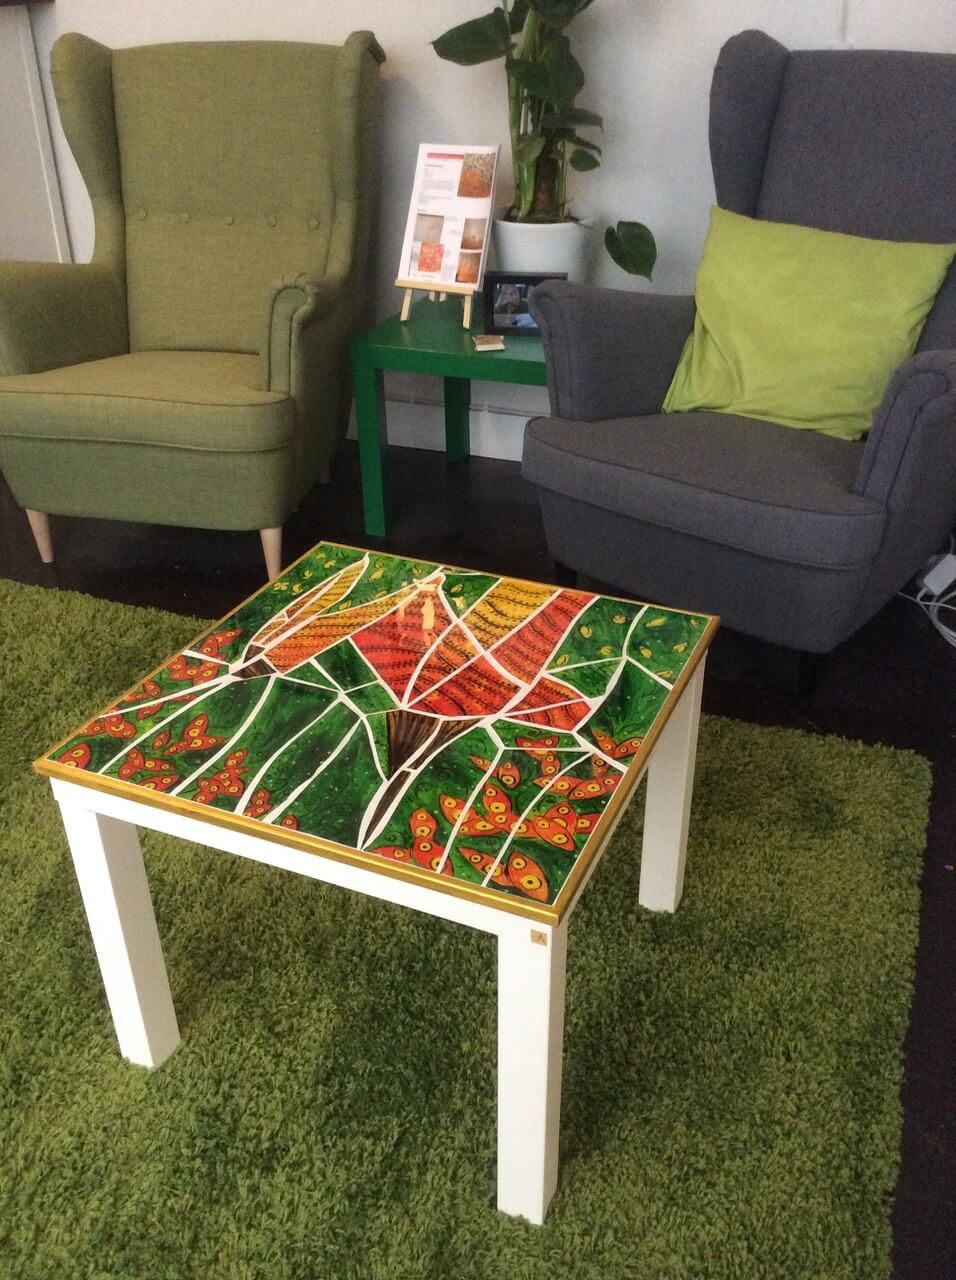 Lack side table with recycled art